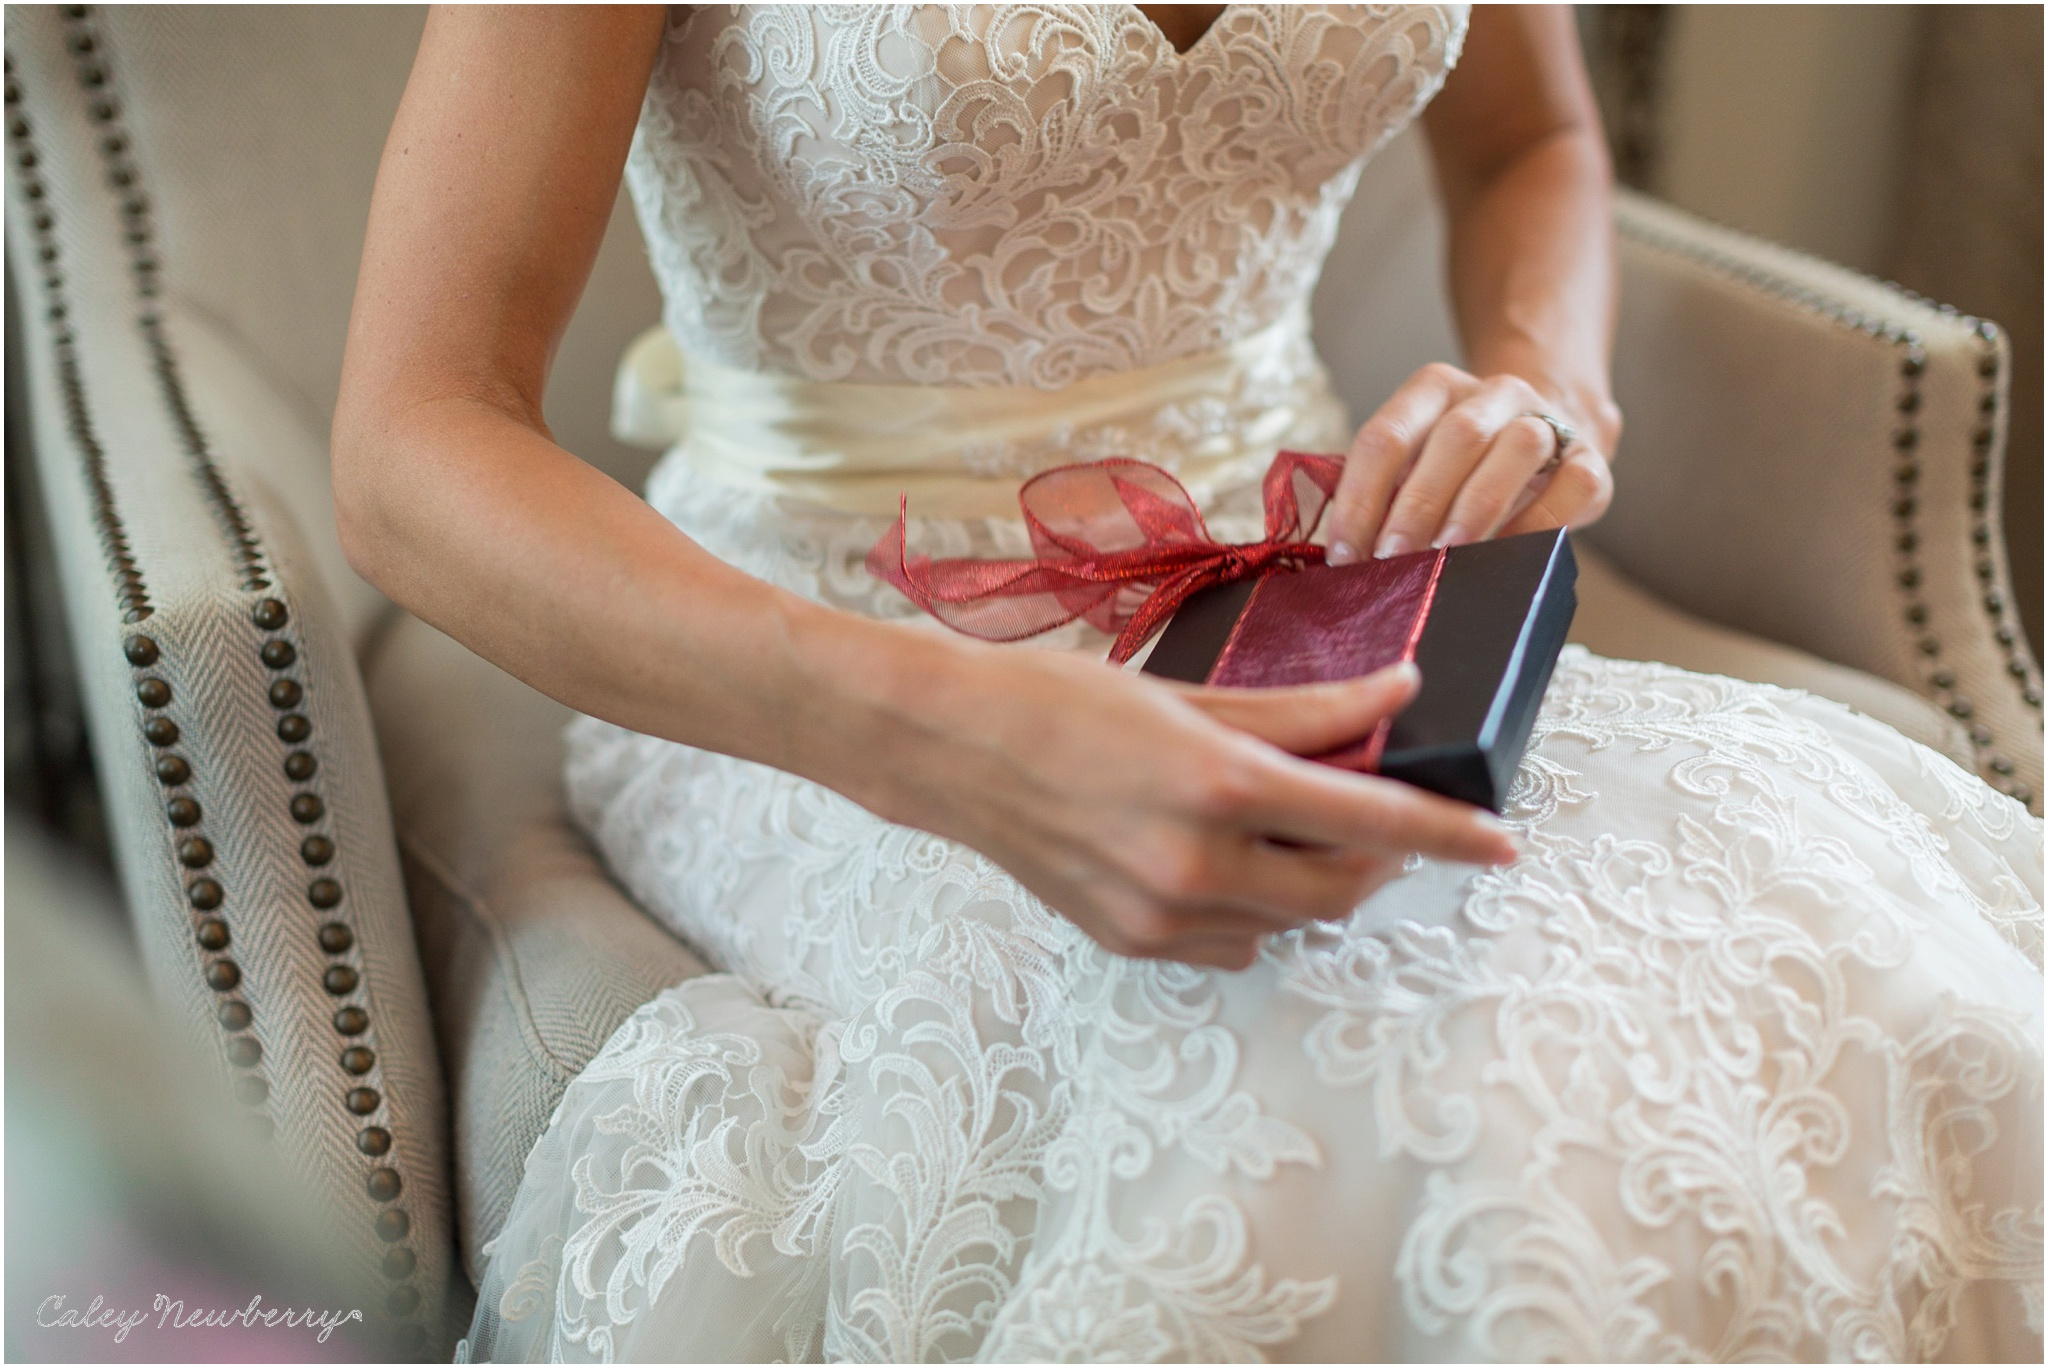 bride-opening-gift-at-wedding.jpg